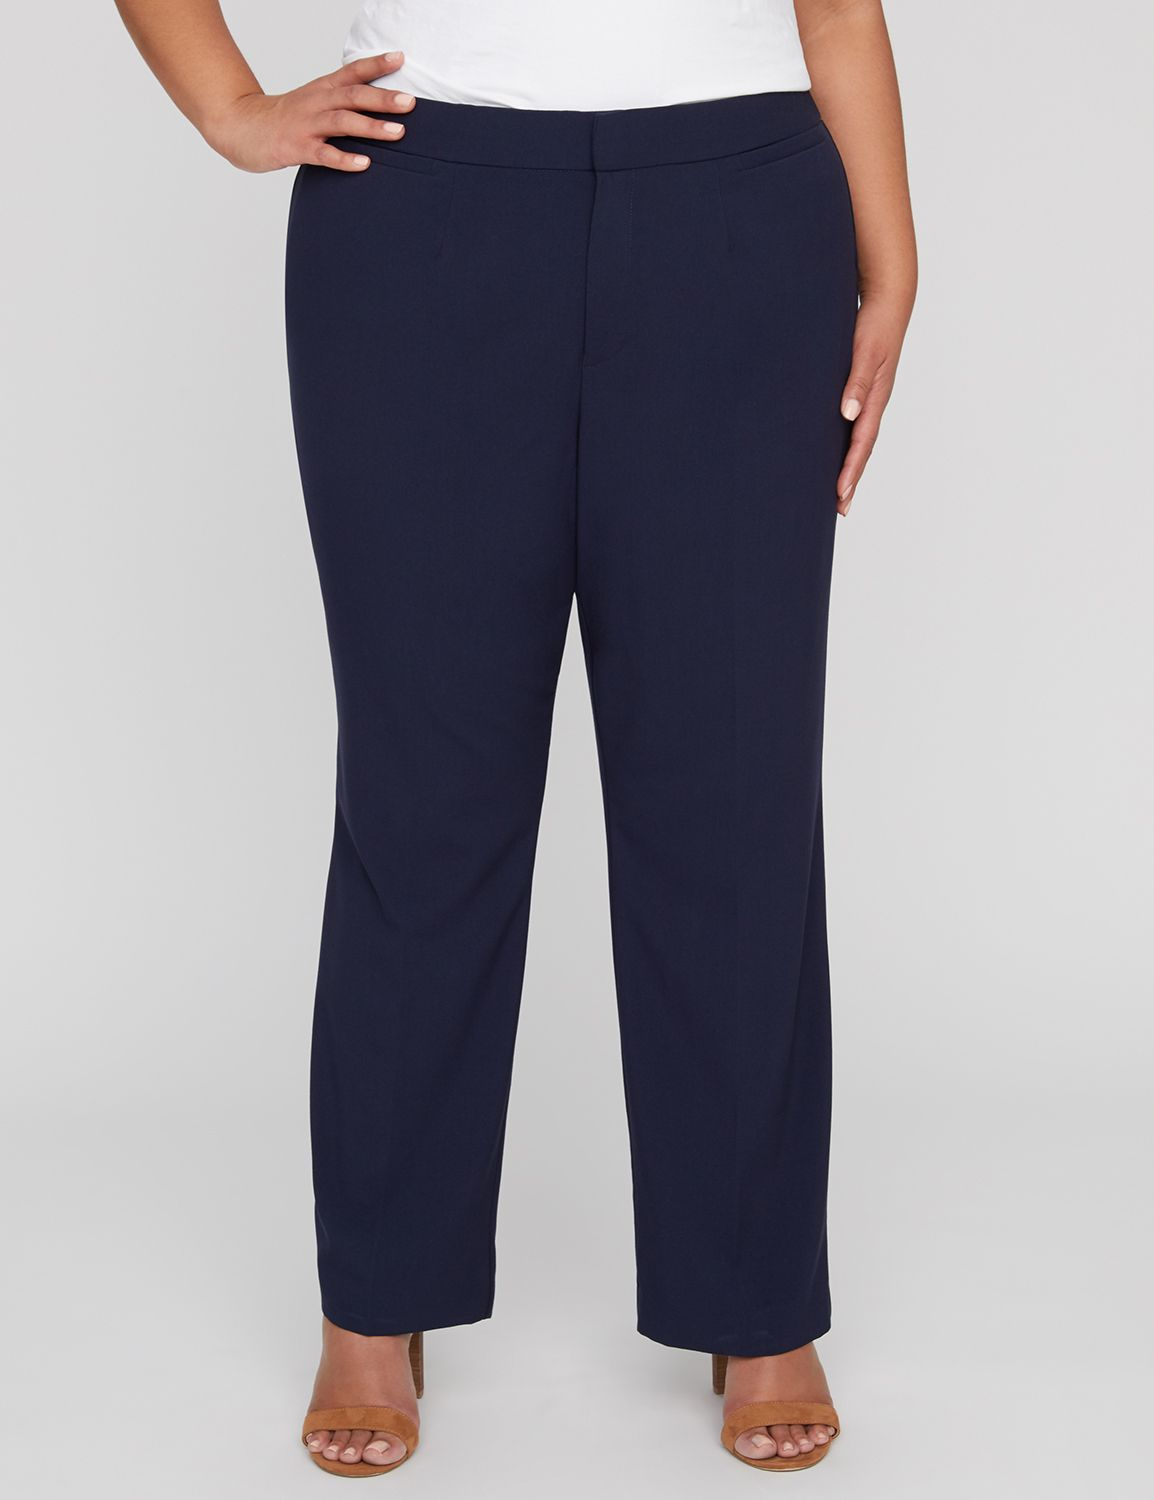 Right Fit Pant (Curvy) Right Fit Pant (Curvy) MP-300043650